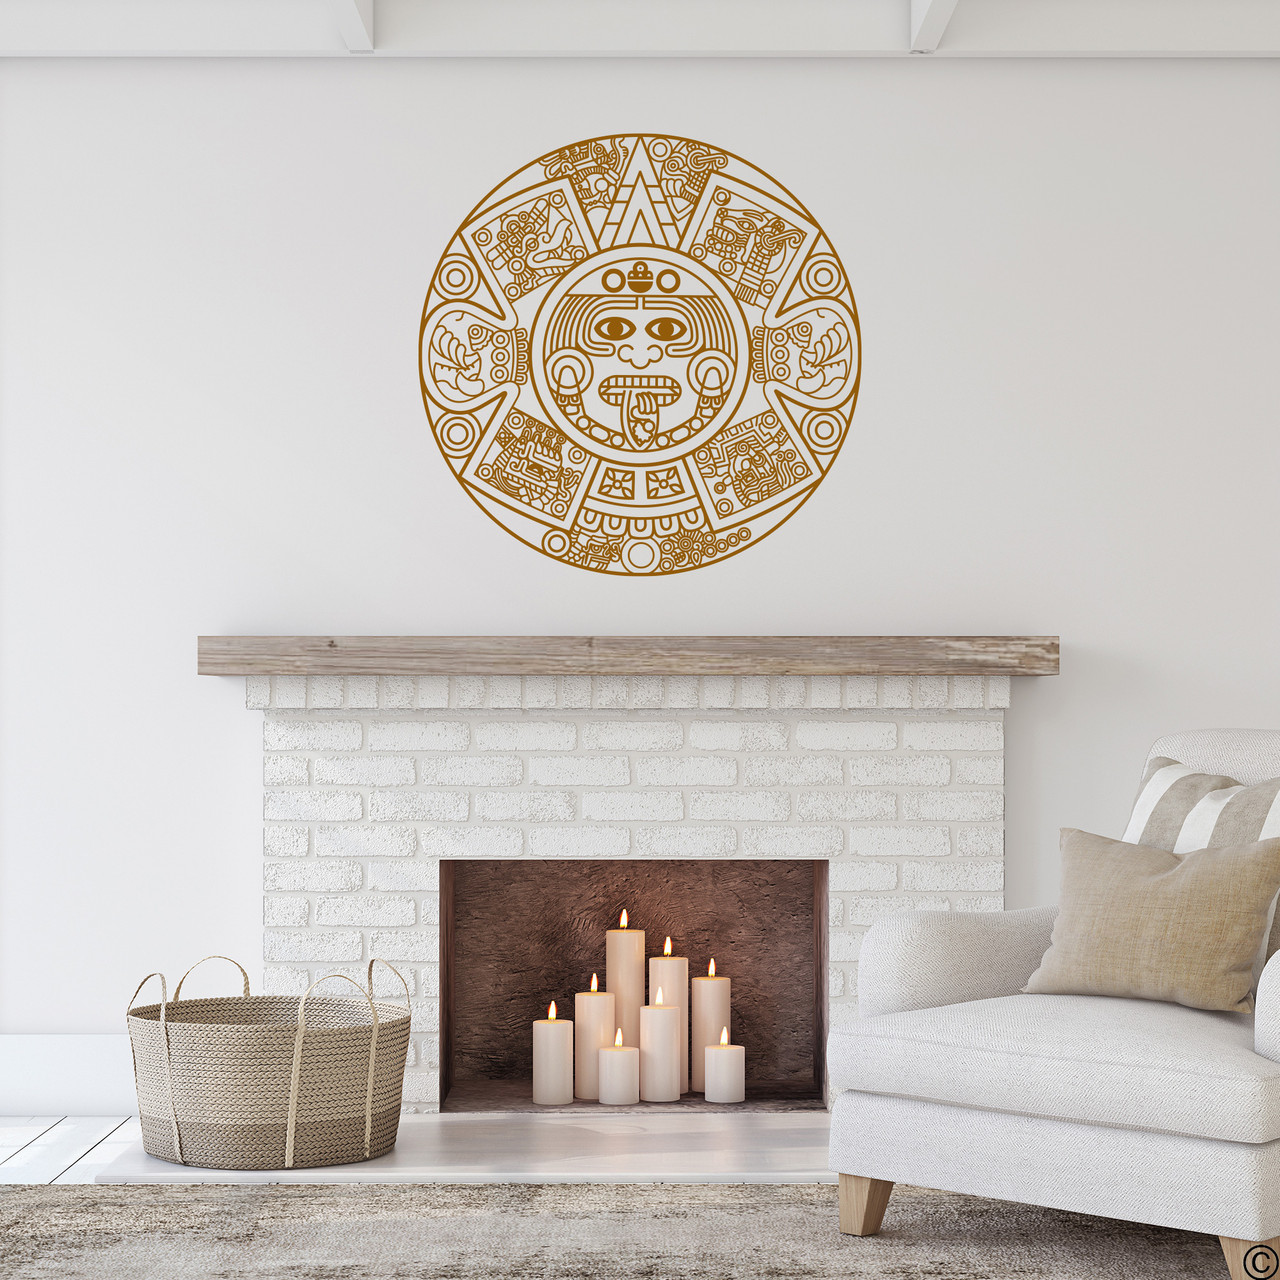 The Aztec Calendar wall decal in clay brown vinyl color.